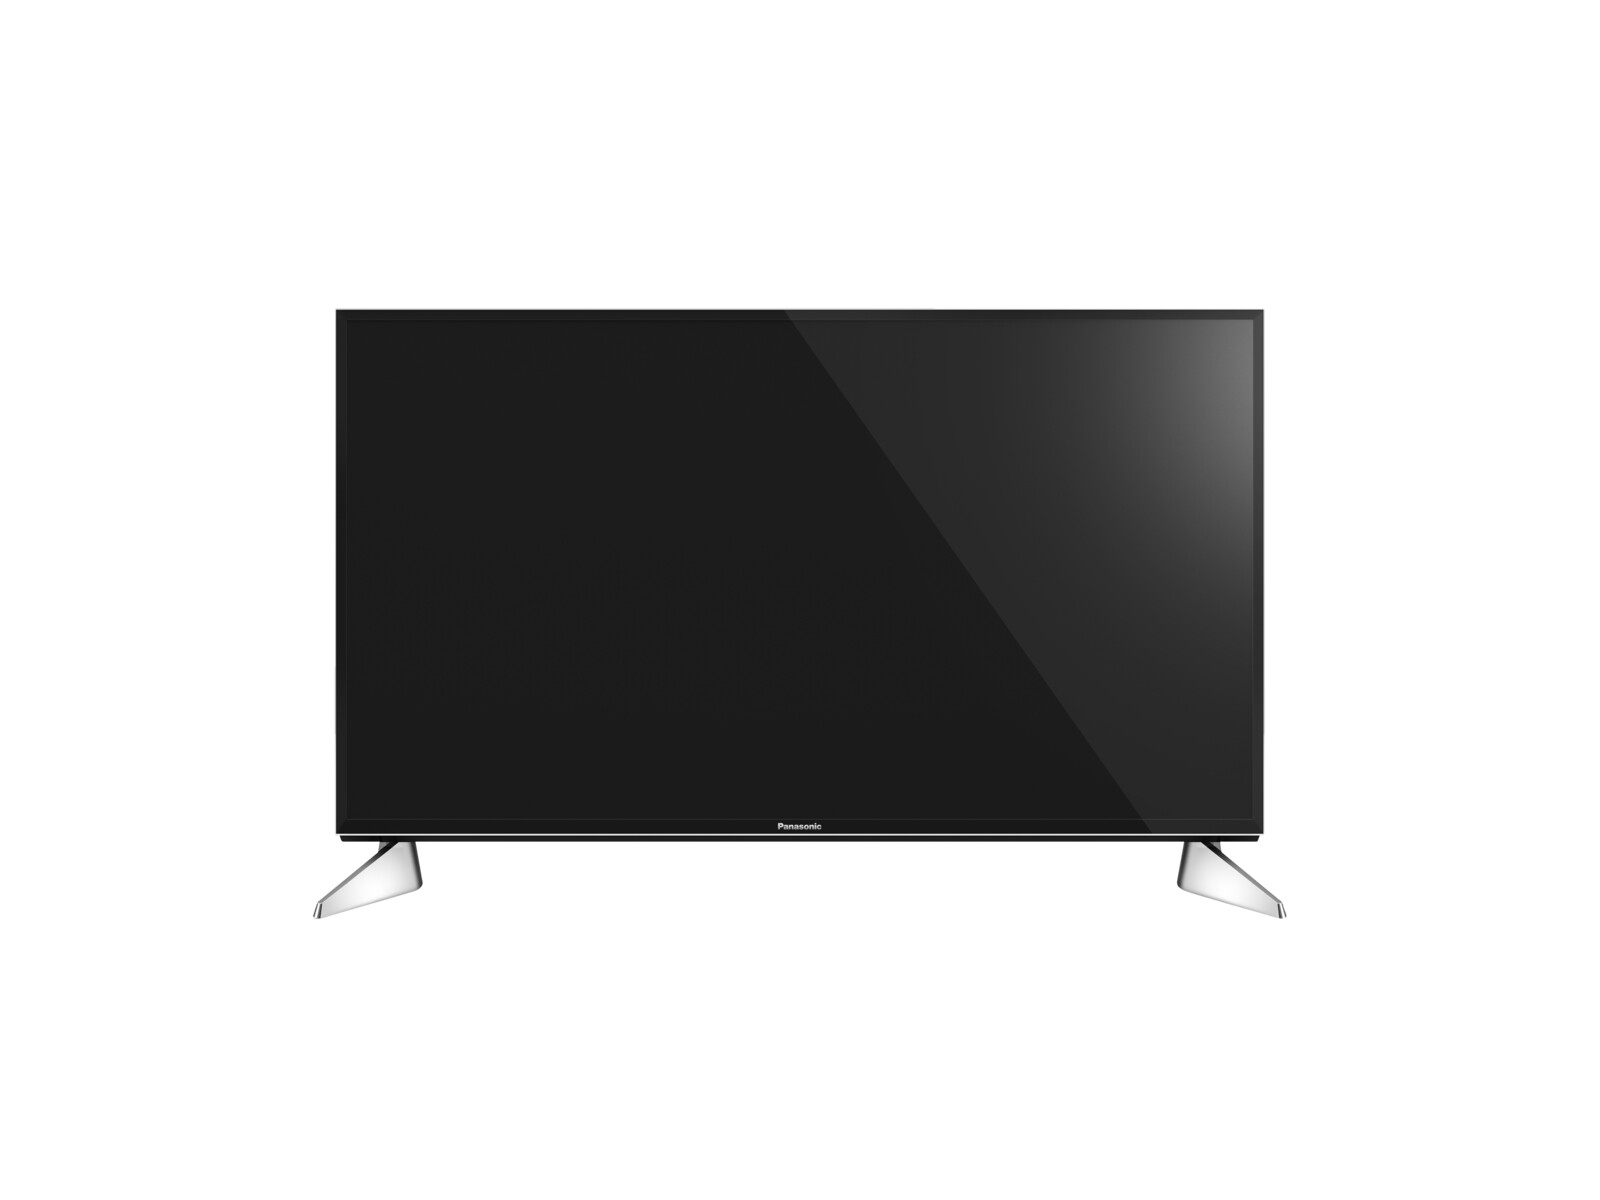 panasonic tx 40exw604 led tv flat 40 zoll uhd 4k smart. Black Bedroom Furniture Sets. Home Design Ideas